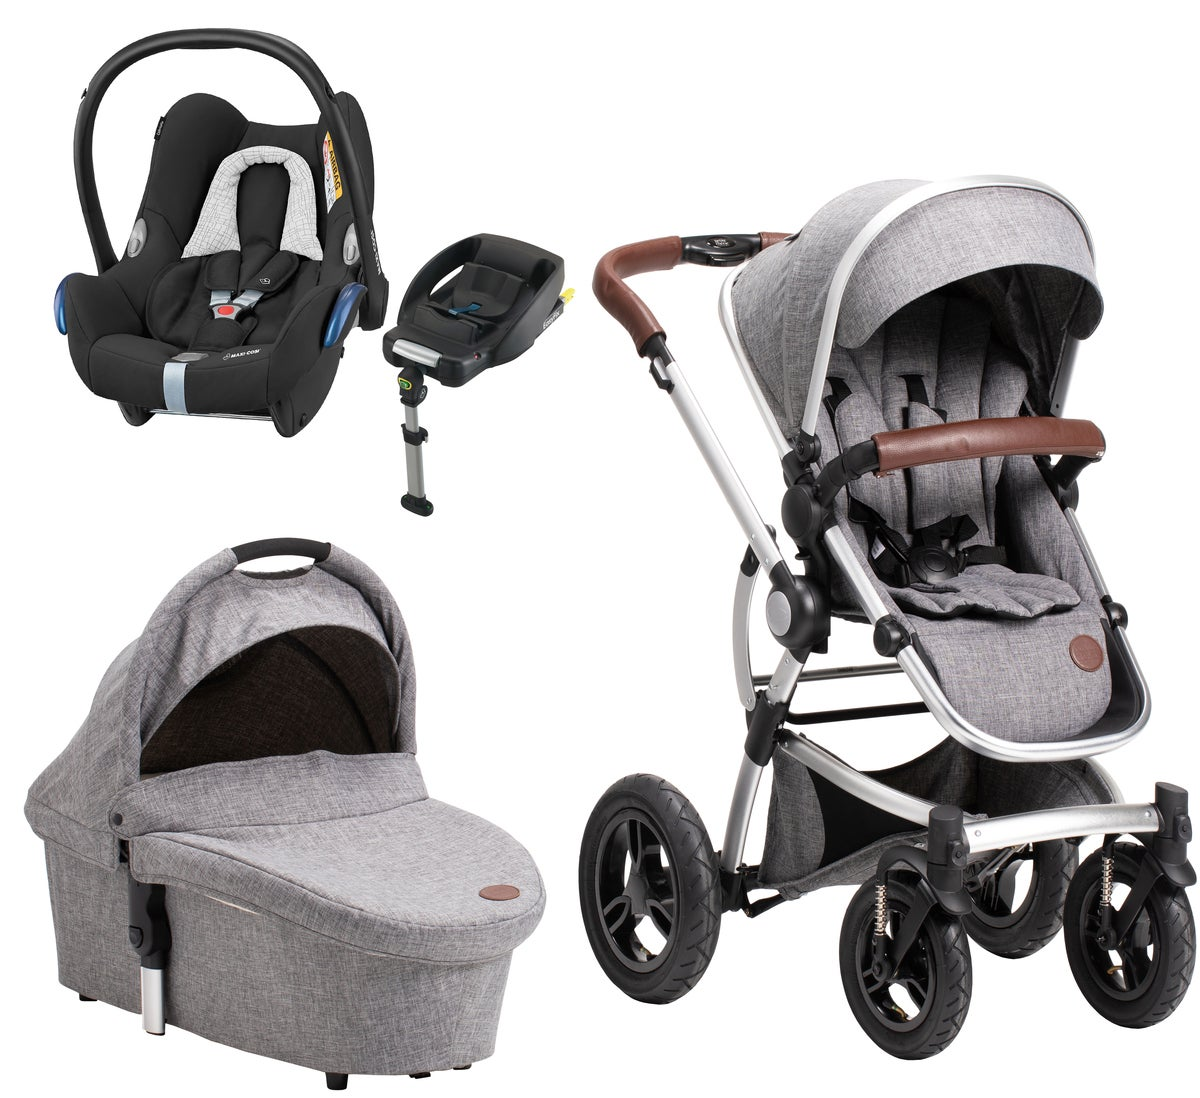 Petite Chérie Lively 2 Duovogn, Grey Melange + Maxi Cosi Travelsystem